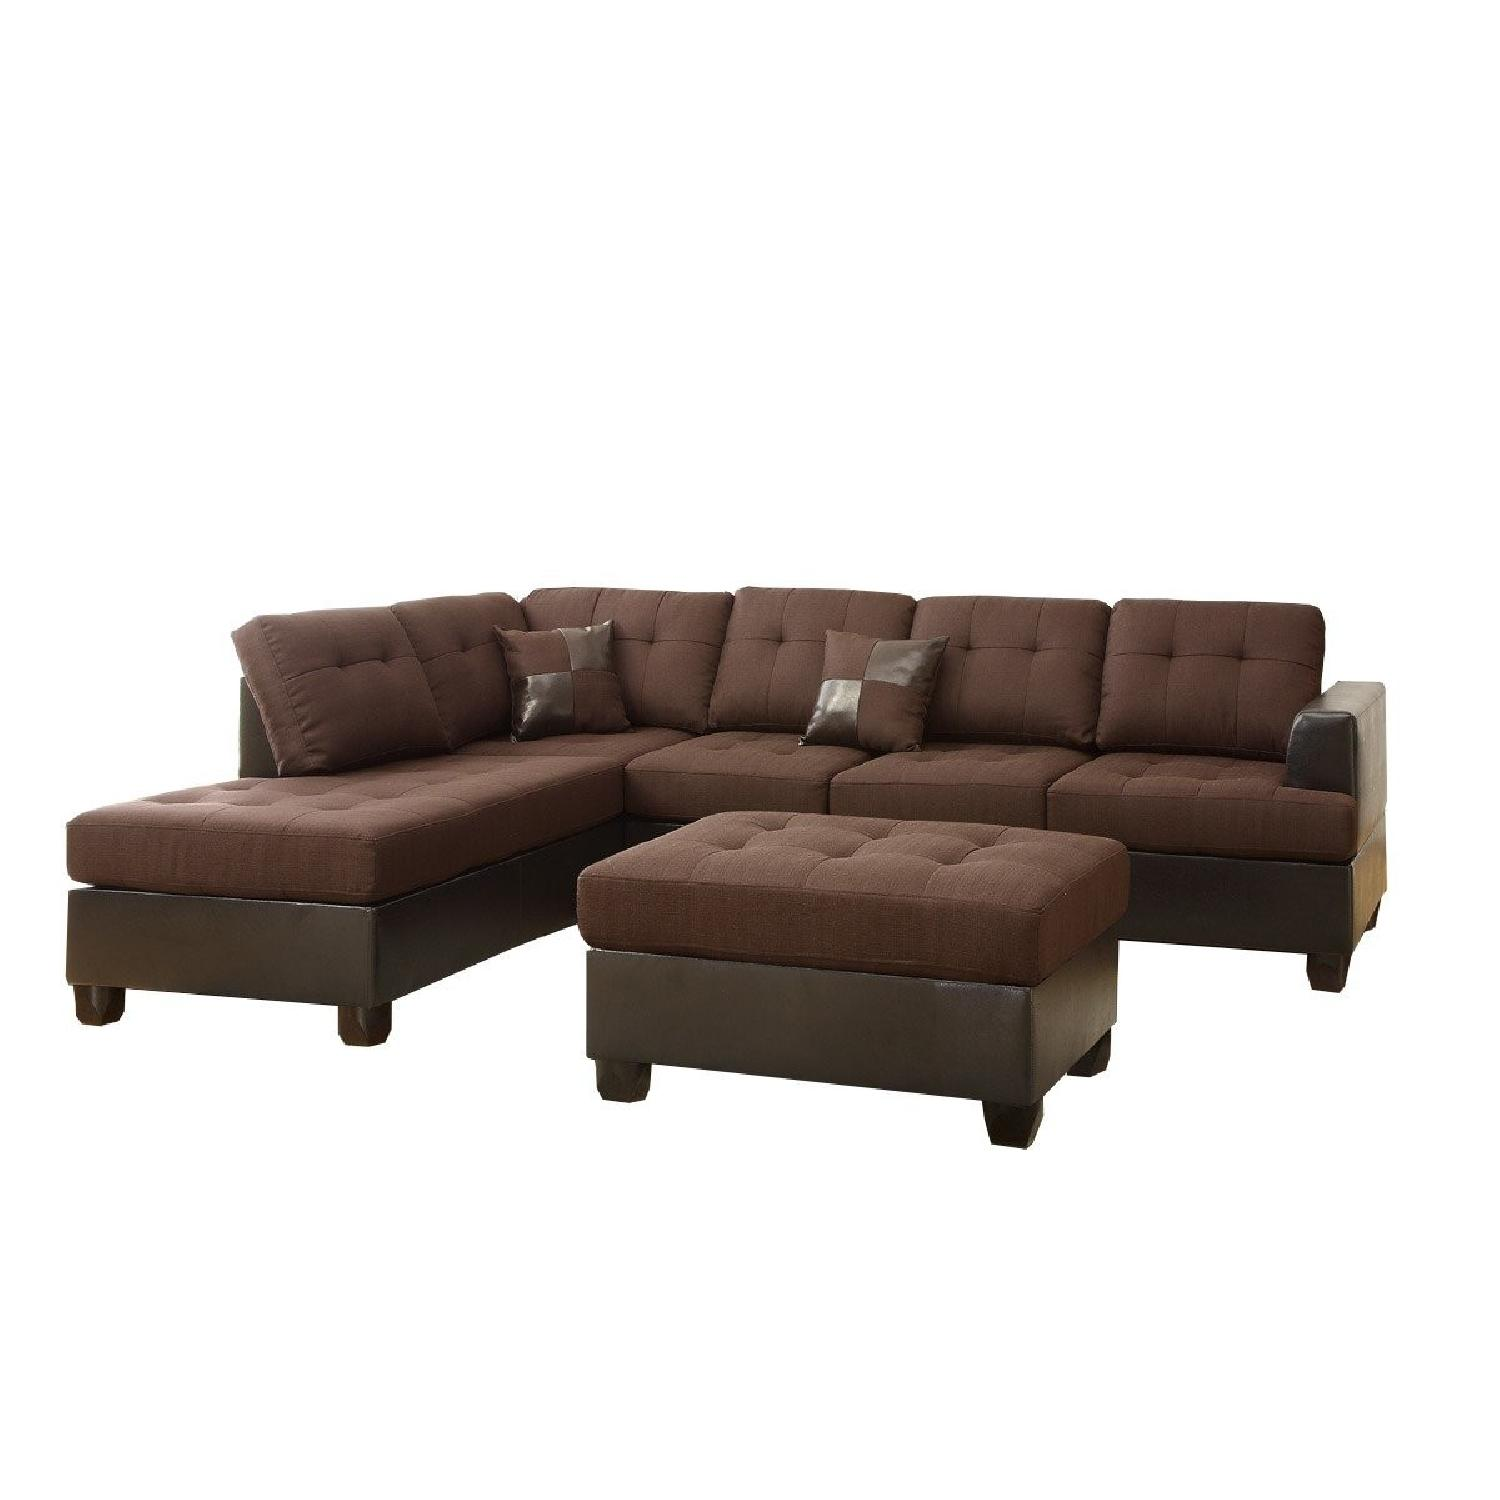 3 Piece Reversible Chaise Sectional Sofa In Brown